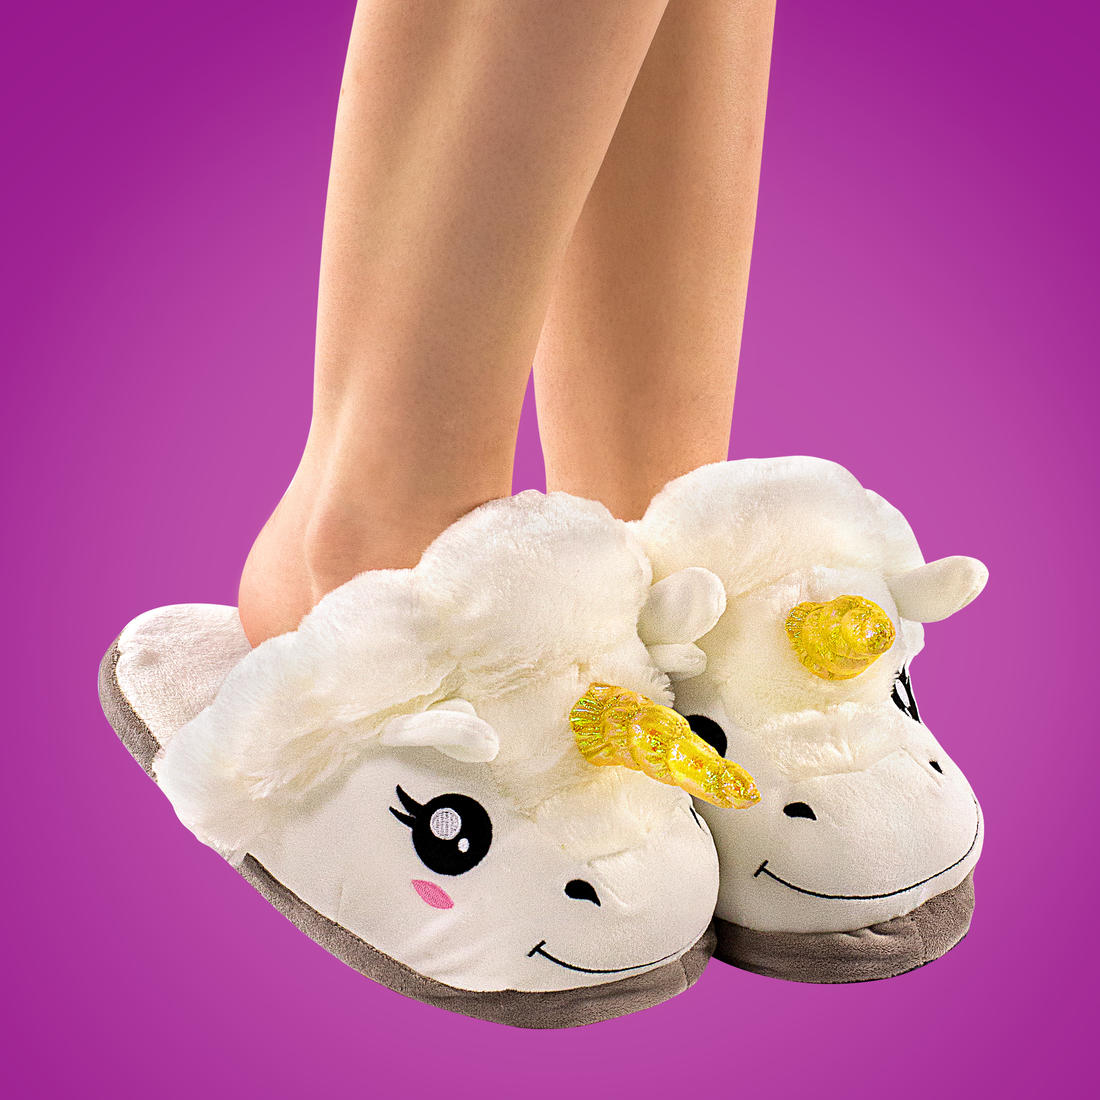 Credit Cards For Fair Credit >> Unicorn Slippers | getDigital